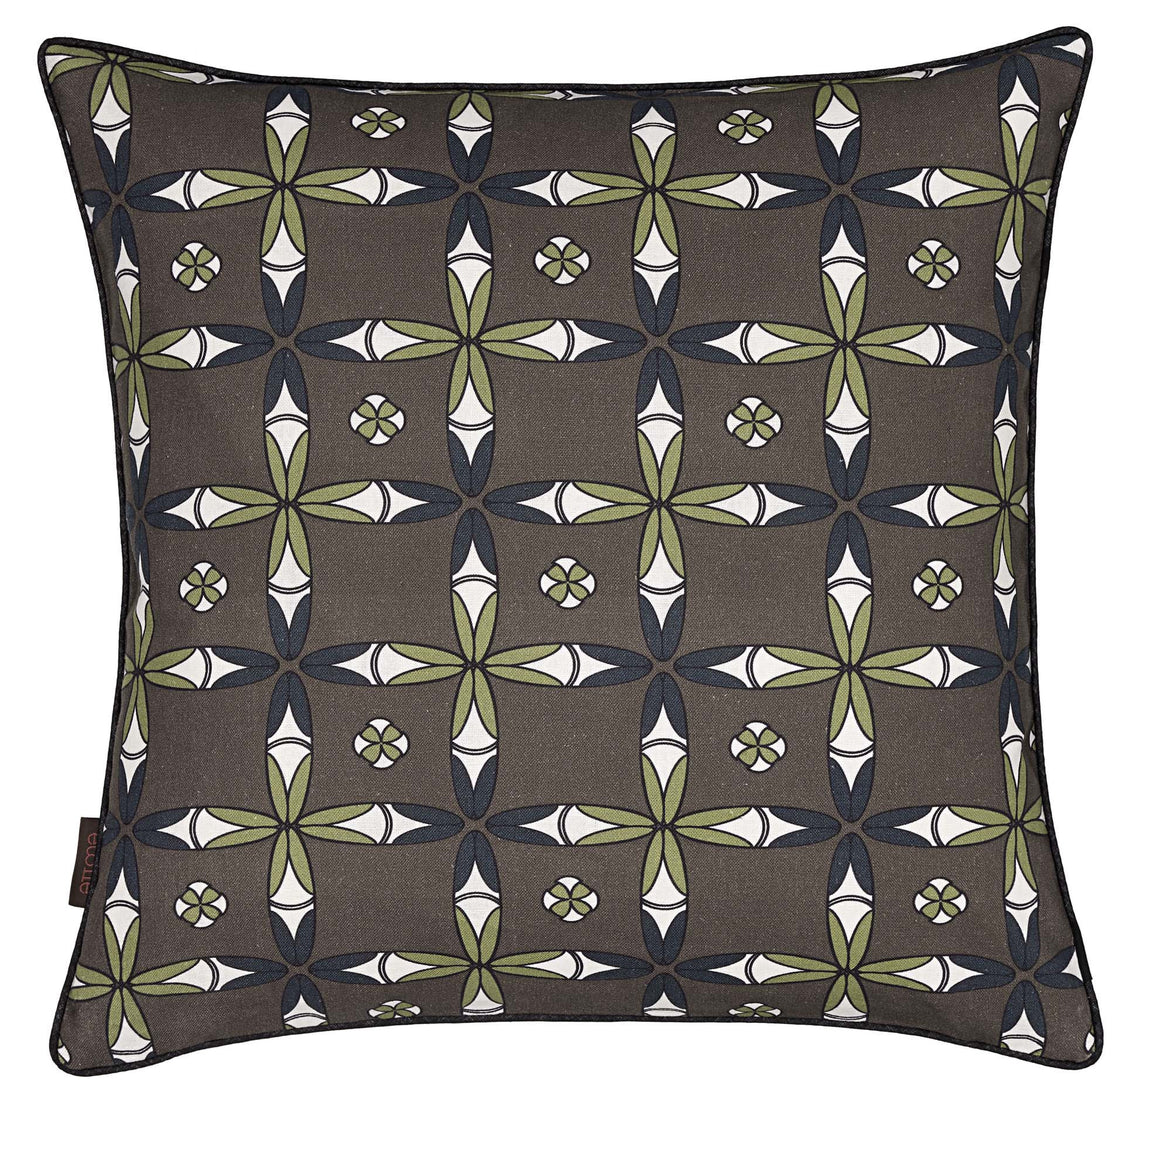 "Navajo Ethnic Geometric Pattern Linen Cotton Decorative Throw Pillow in Stone Grey 45x45cm (18x18"")"